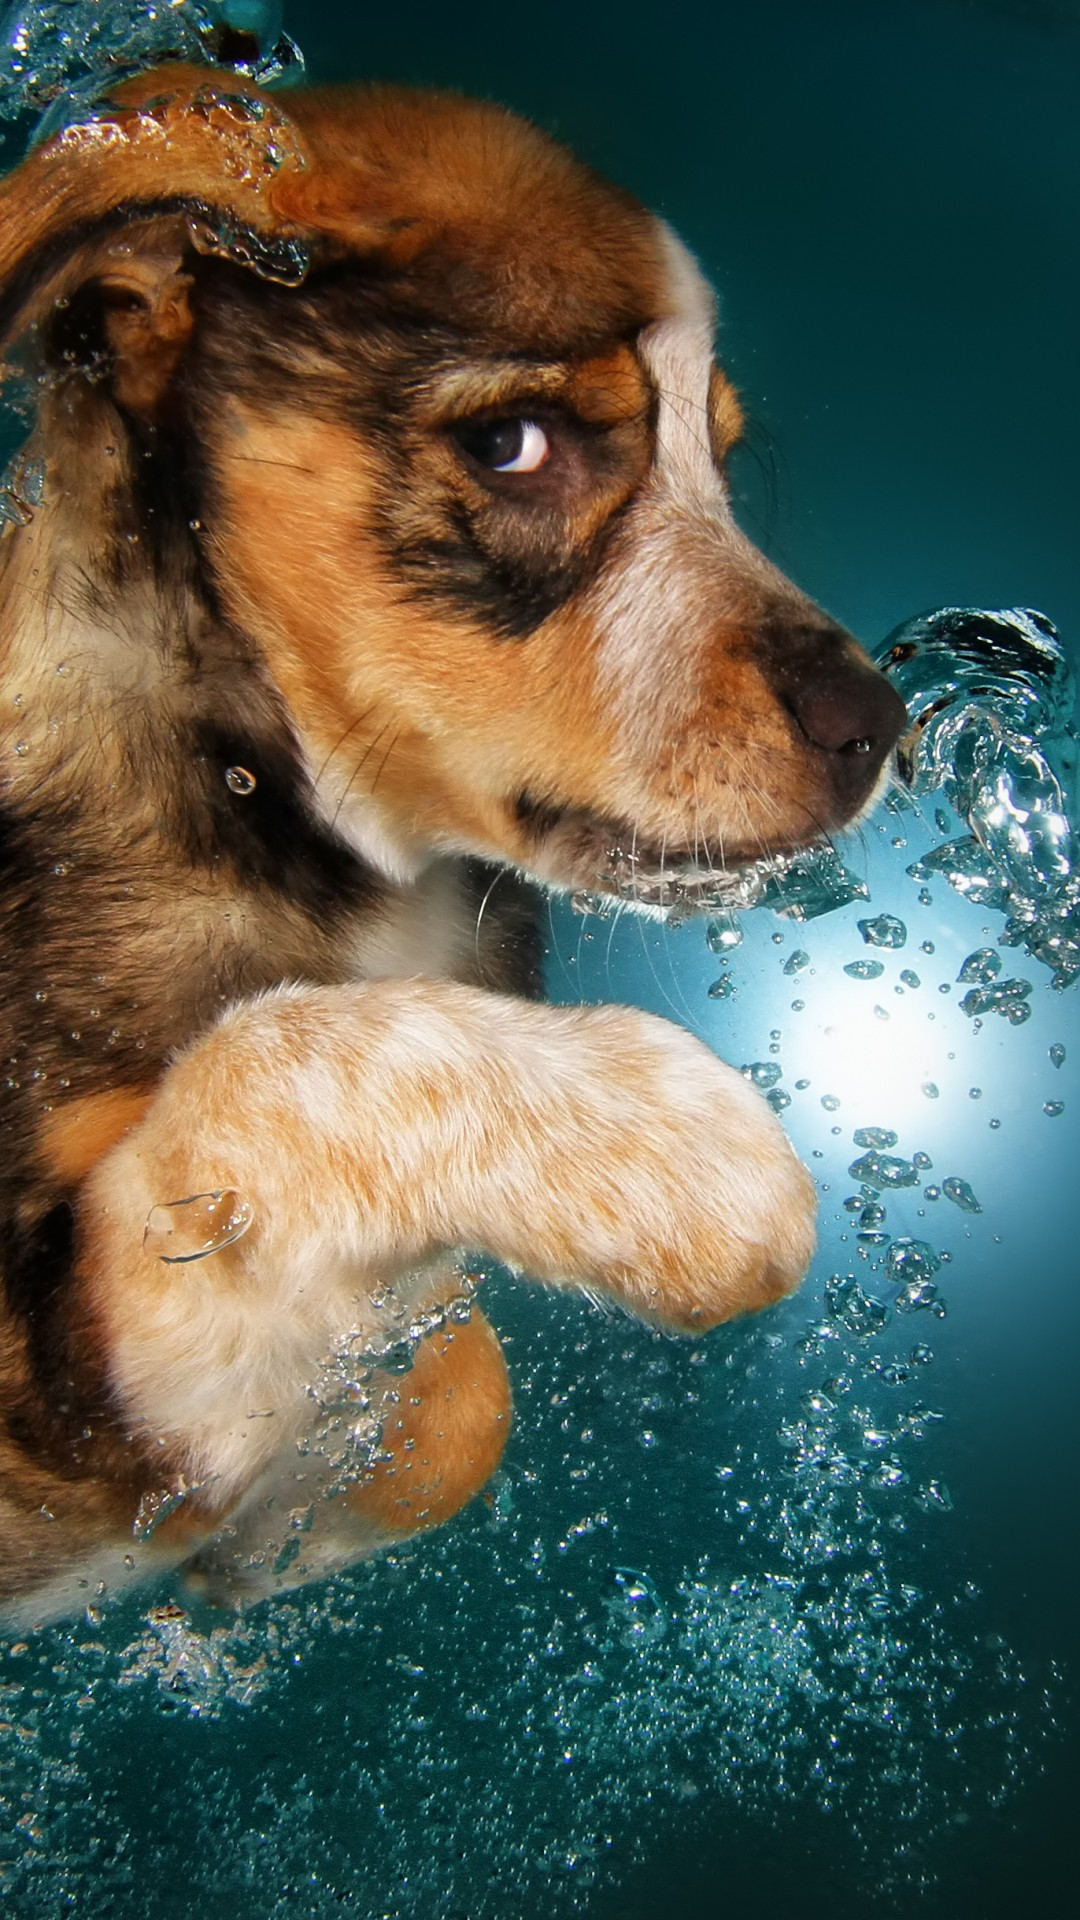 Cute Dog Wallpapers With Quotes Wallpaper Border Collie Dog Underwater Cute Animals